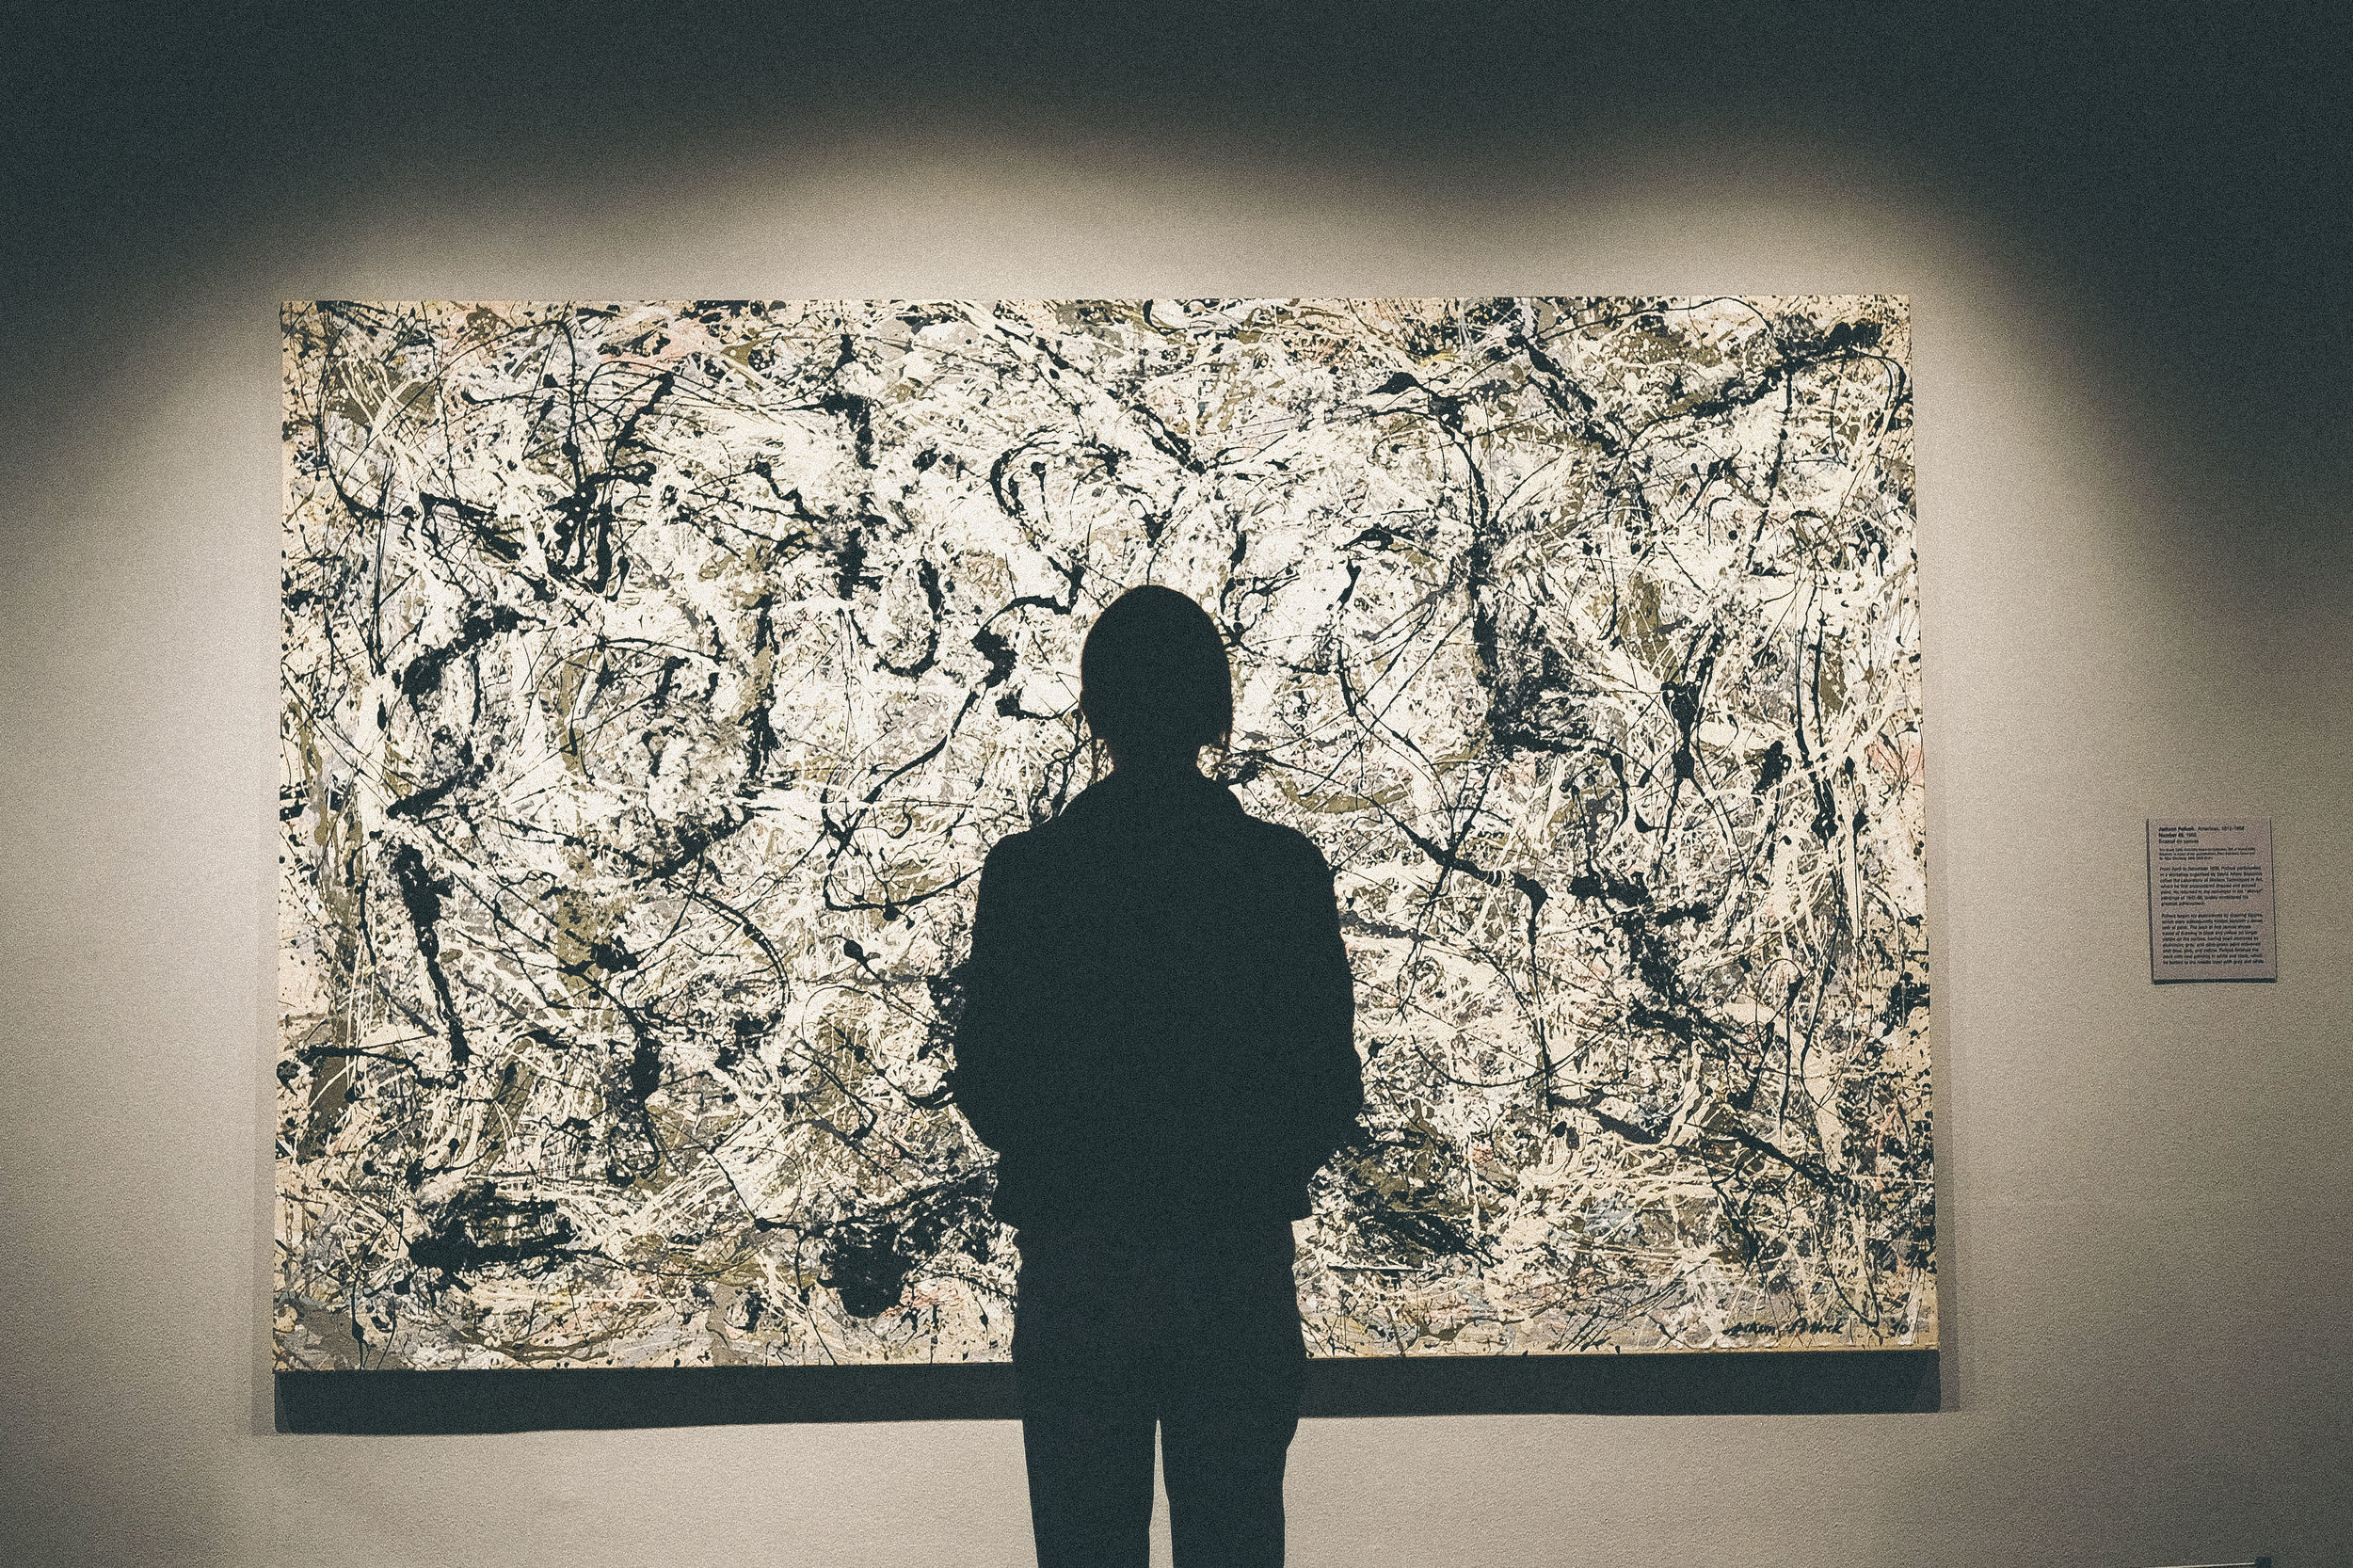 dérrive travel - jackson pollock at the met museum and balthazar, nyc www.derrive.com #jacksonpollock #themetmuseum #nyc #newyork #balthazar #traveldiary